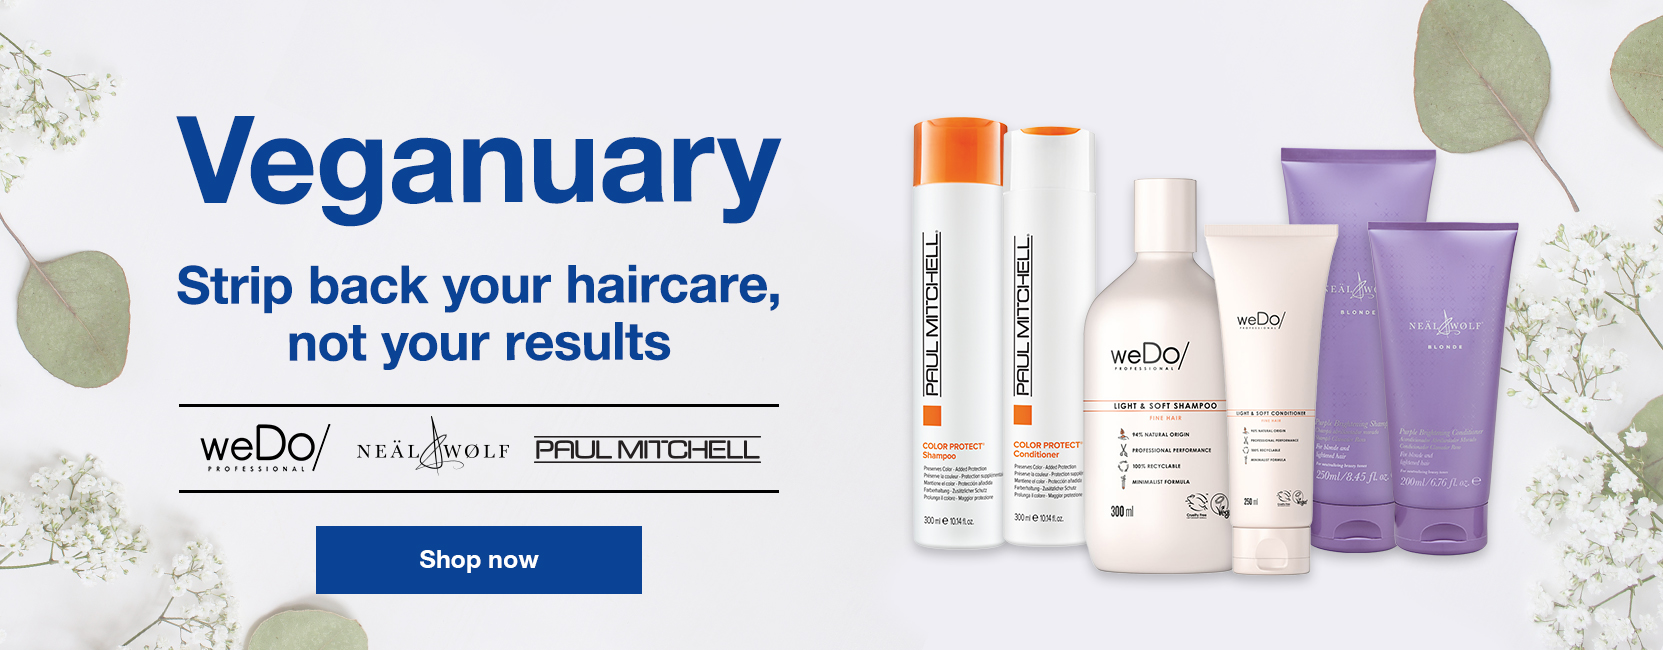 Supercuts veganuary